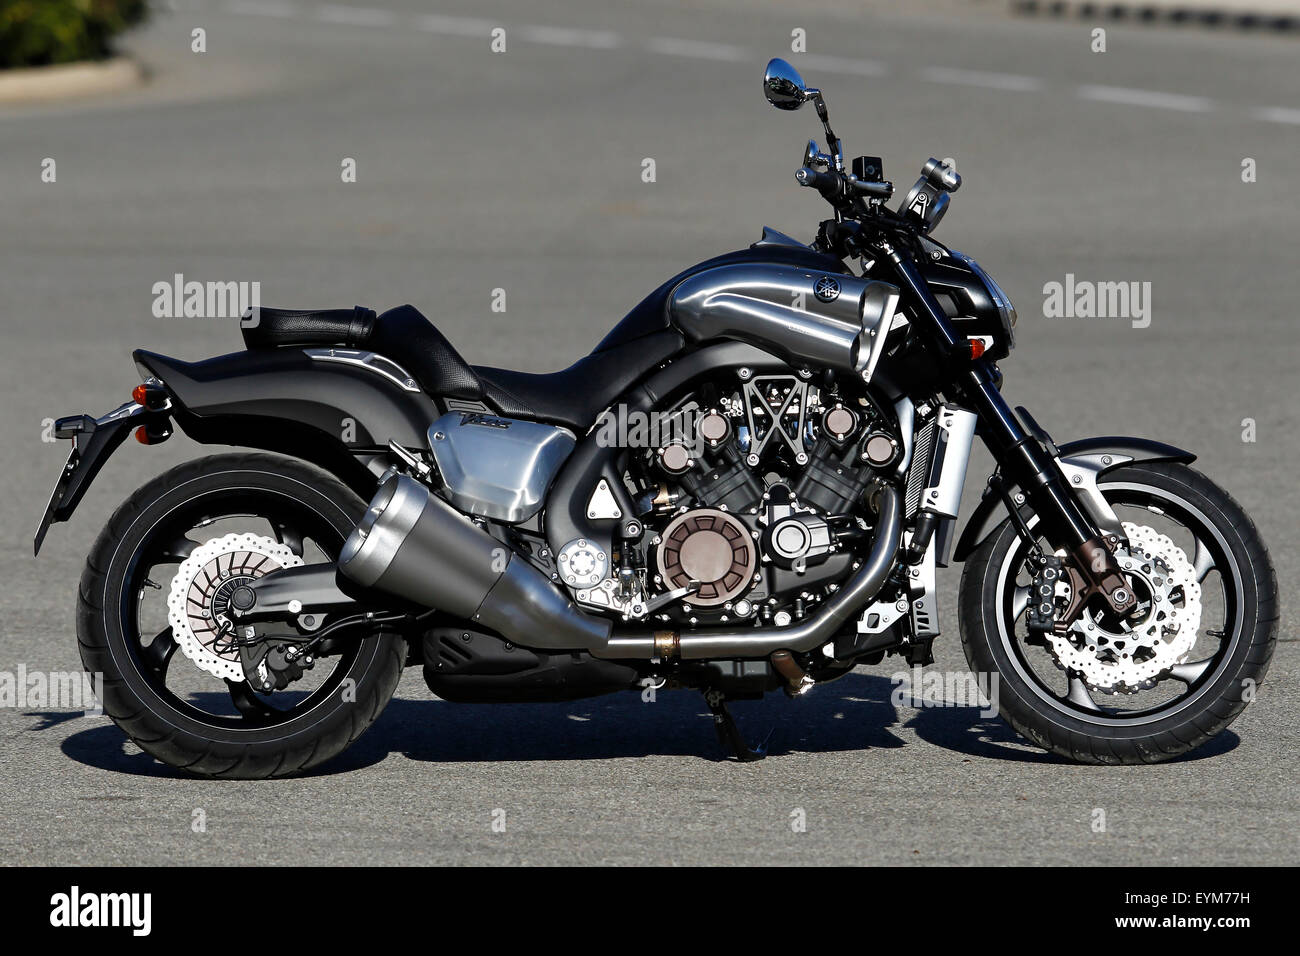 Motorcycle, Speedbike, Yamaha Vmax, standing, lateral view